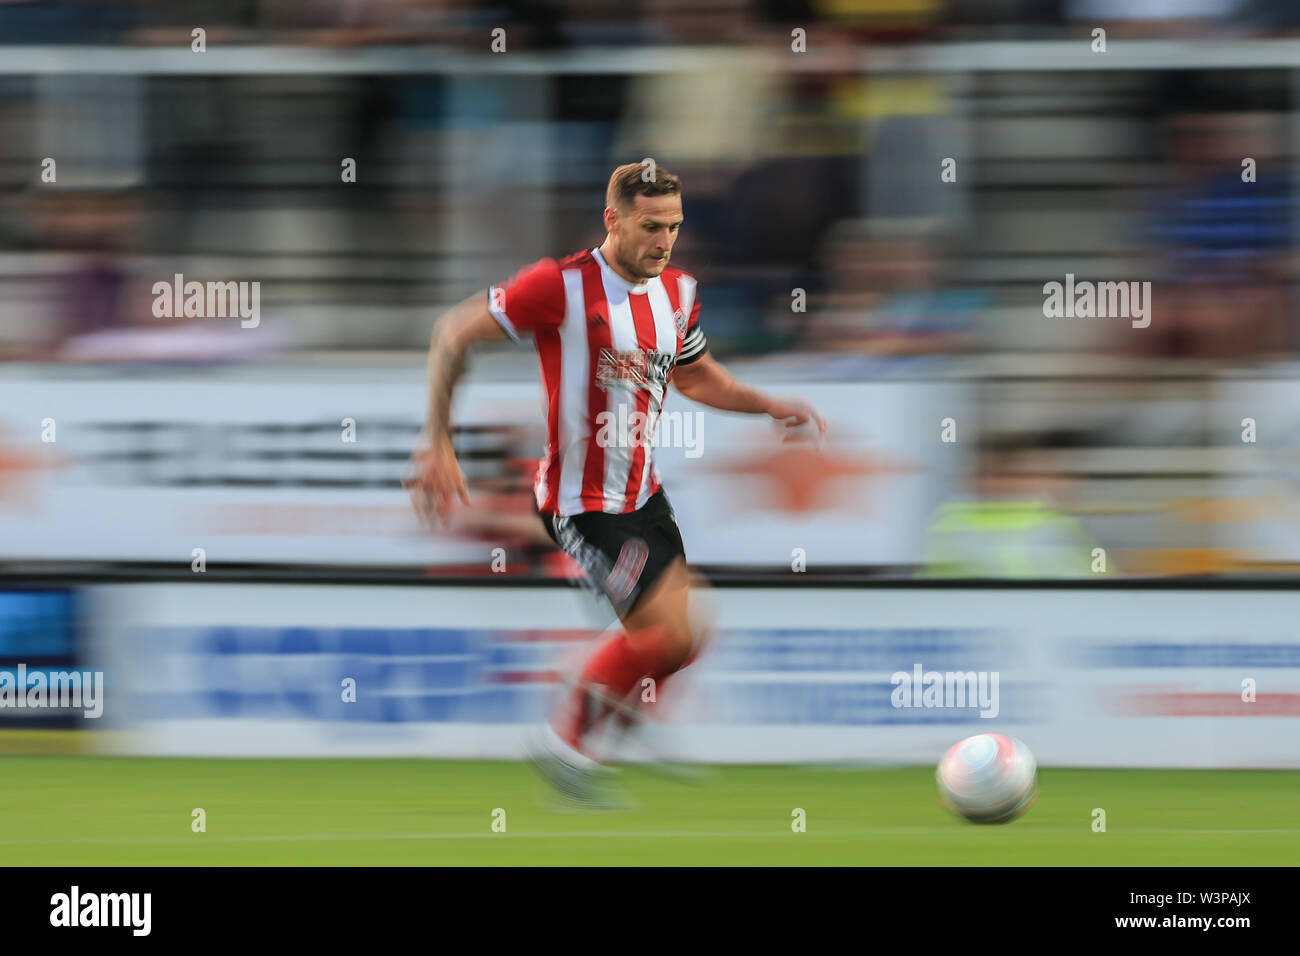 16th July 2019, Pirelli Stadium, Burton upon Trent, England; Pre-Season friendly, Burton Albion vs Sheffield United : Billy Sharp of Sheffield United makes a break Credit: Mark Cosgrove/News Images  English Football League images are subject to DataCo Licence - Stock Image